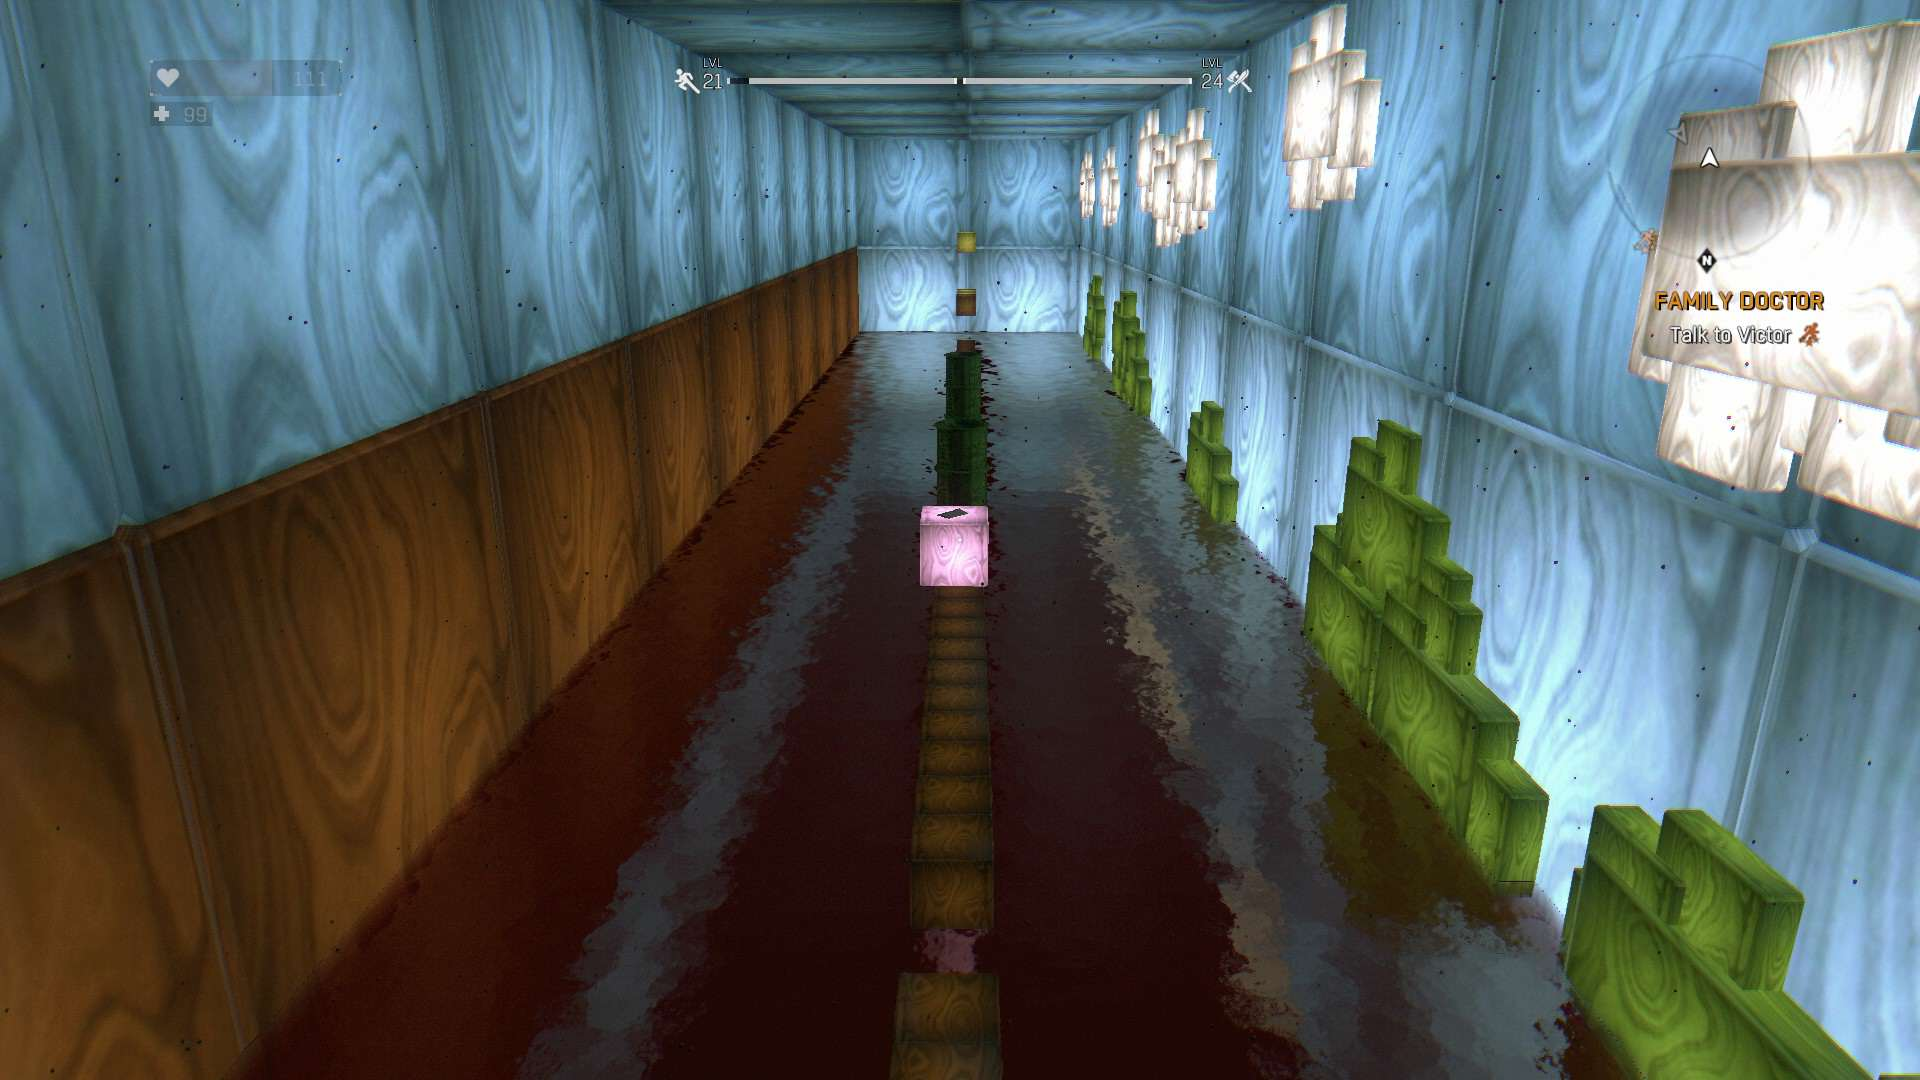 Eleven Great Videogame Easter Eggs From 2014/15 steamworkshop webupload previewfile 383713685 preview